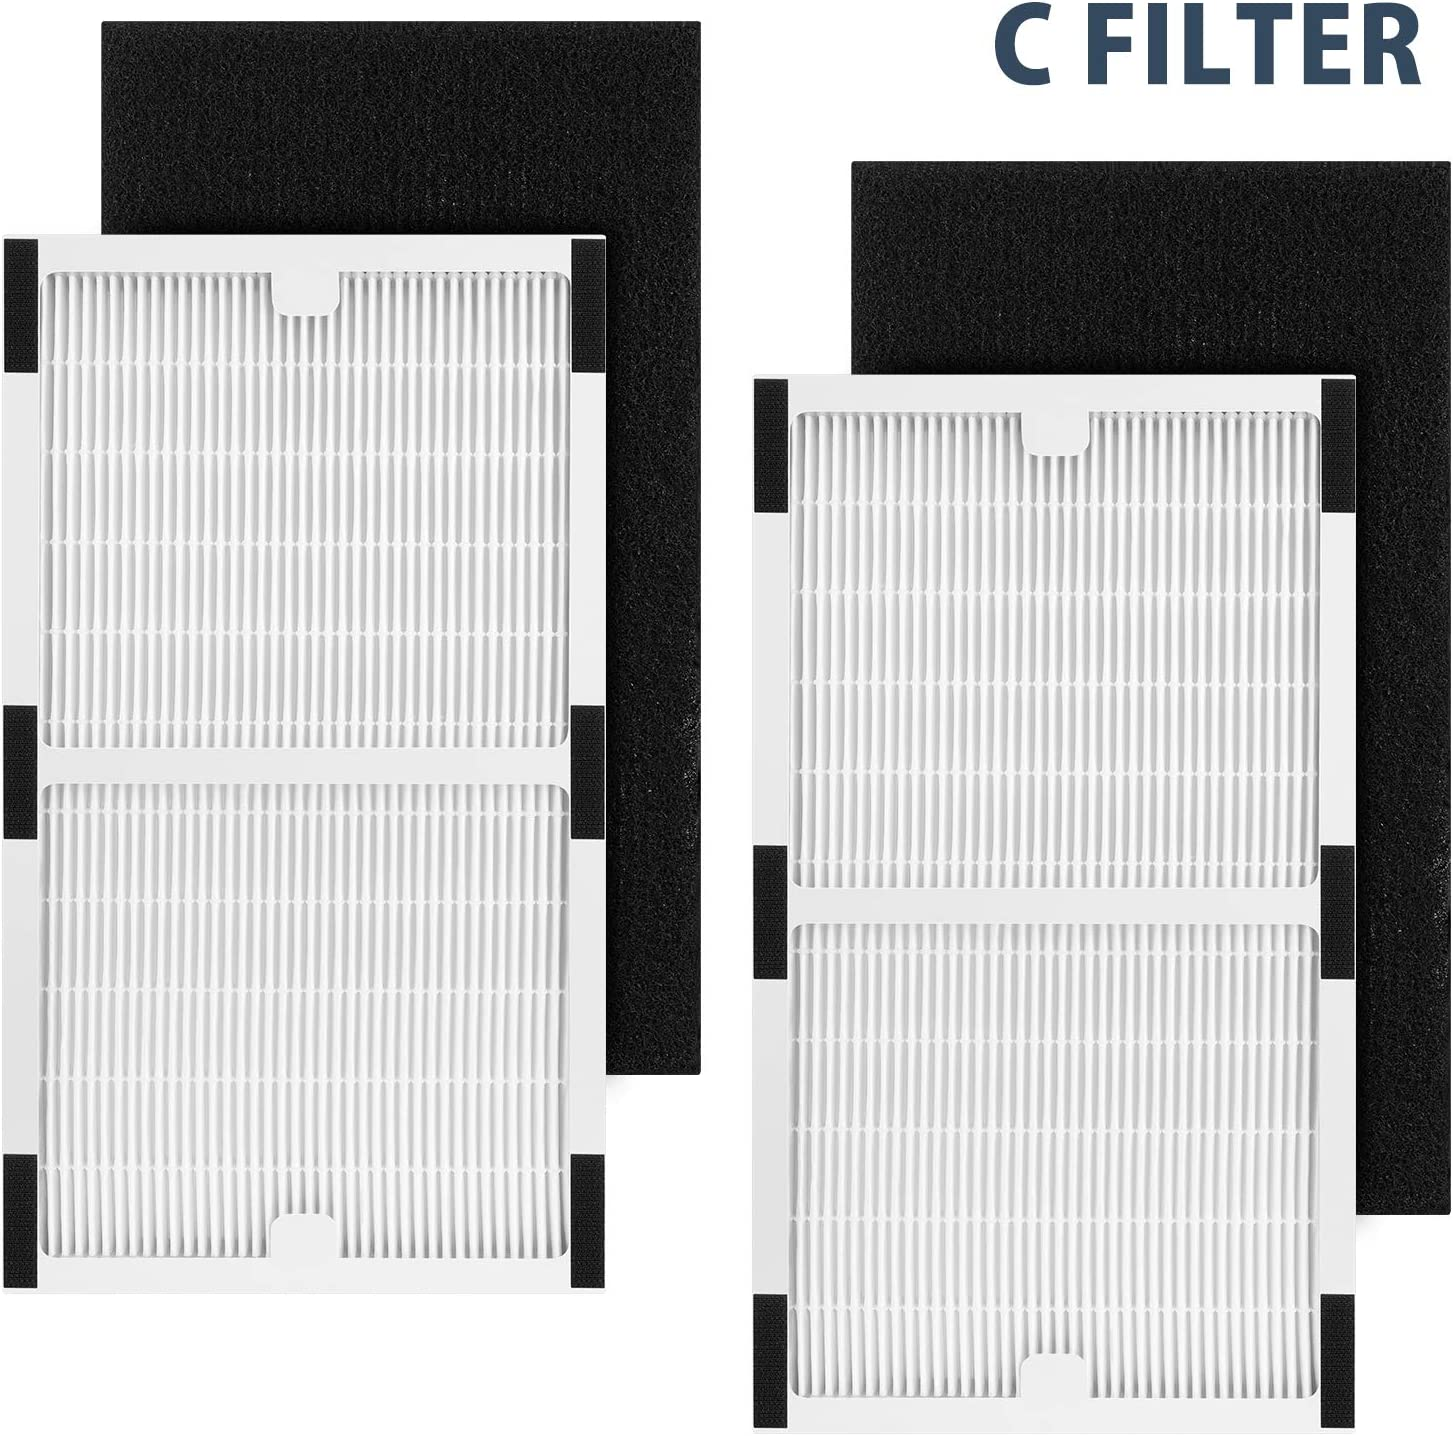 isinlive 2 Pack Idylis IAF-H-100C Hepa Replacement Filter C Filters for Idylis Air Purifiers IAP-10-200, IAP-10-280, Model # IAF-H-100C Includes 2 Idylis Type C Hepa Filter & 2 Carbon Pre-Filter